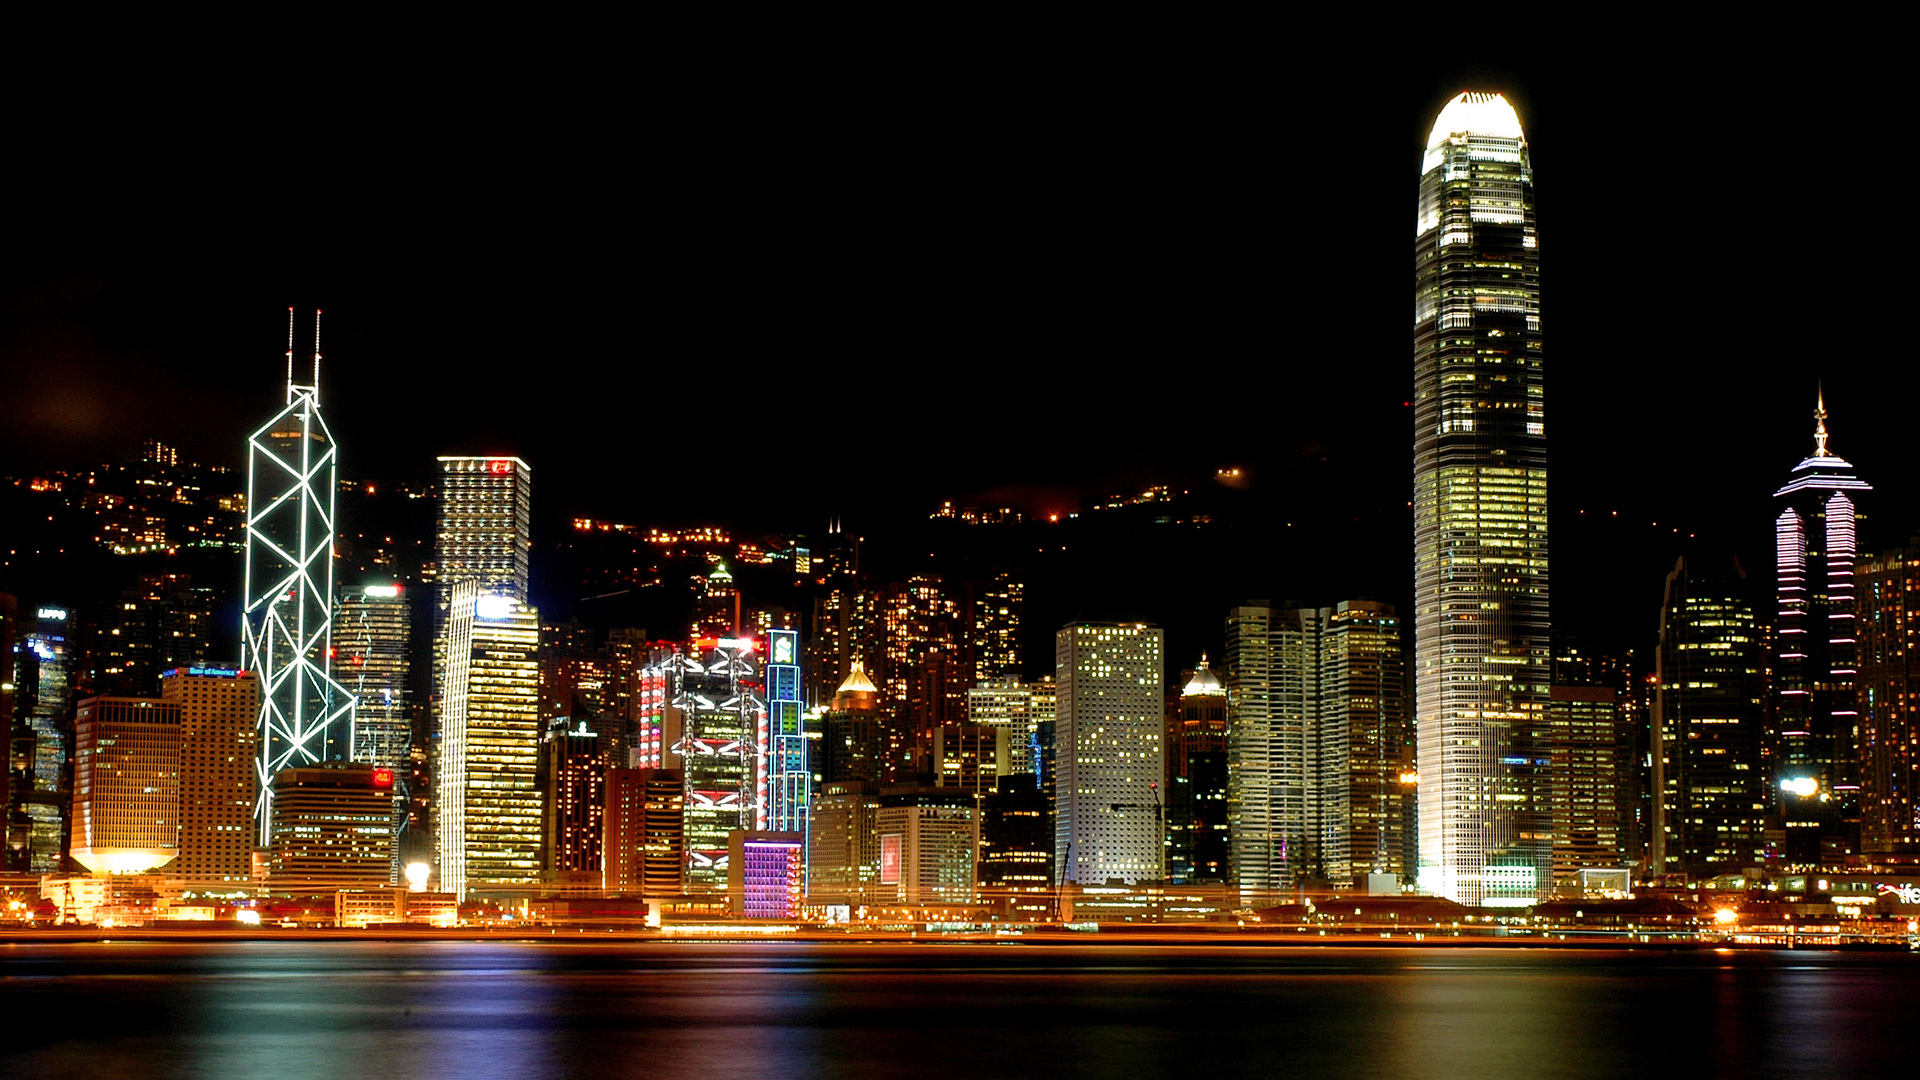 50 Free HD City Wallpapers for City Lights At Night Wallpaper  103wja